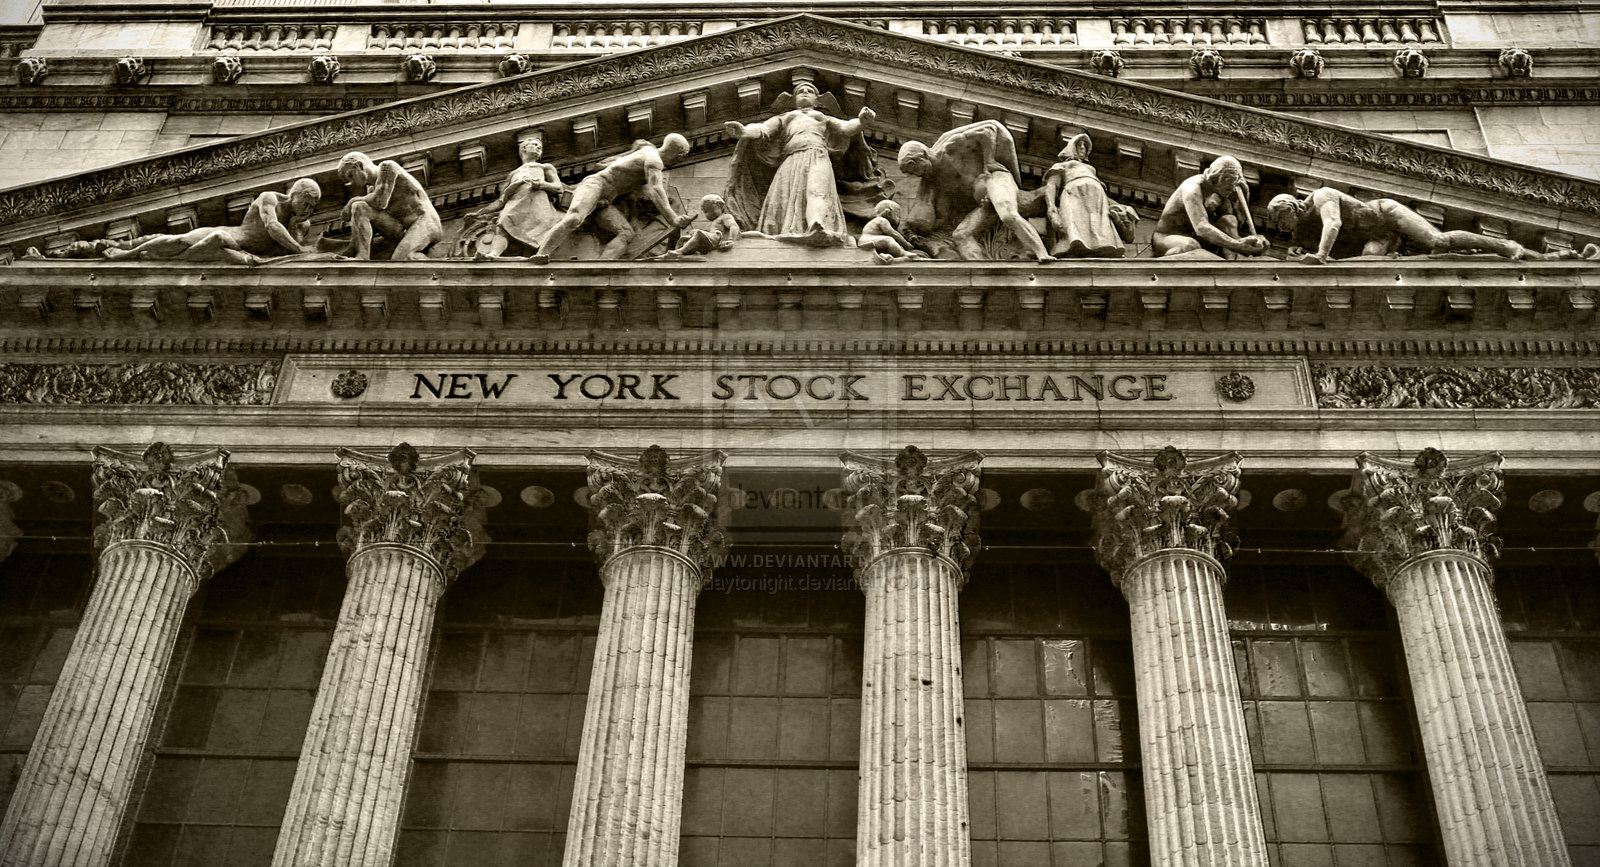 New_York_Stock_Exchange_by_daytonight.jpg